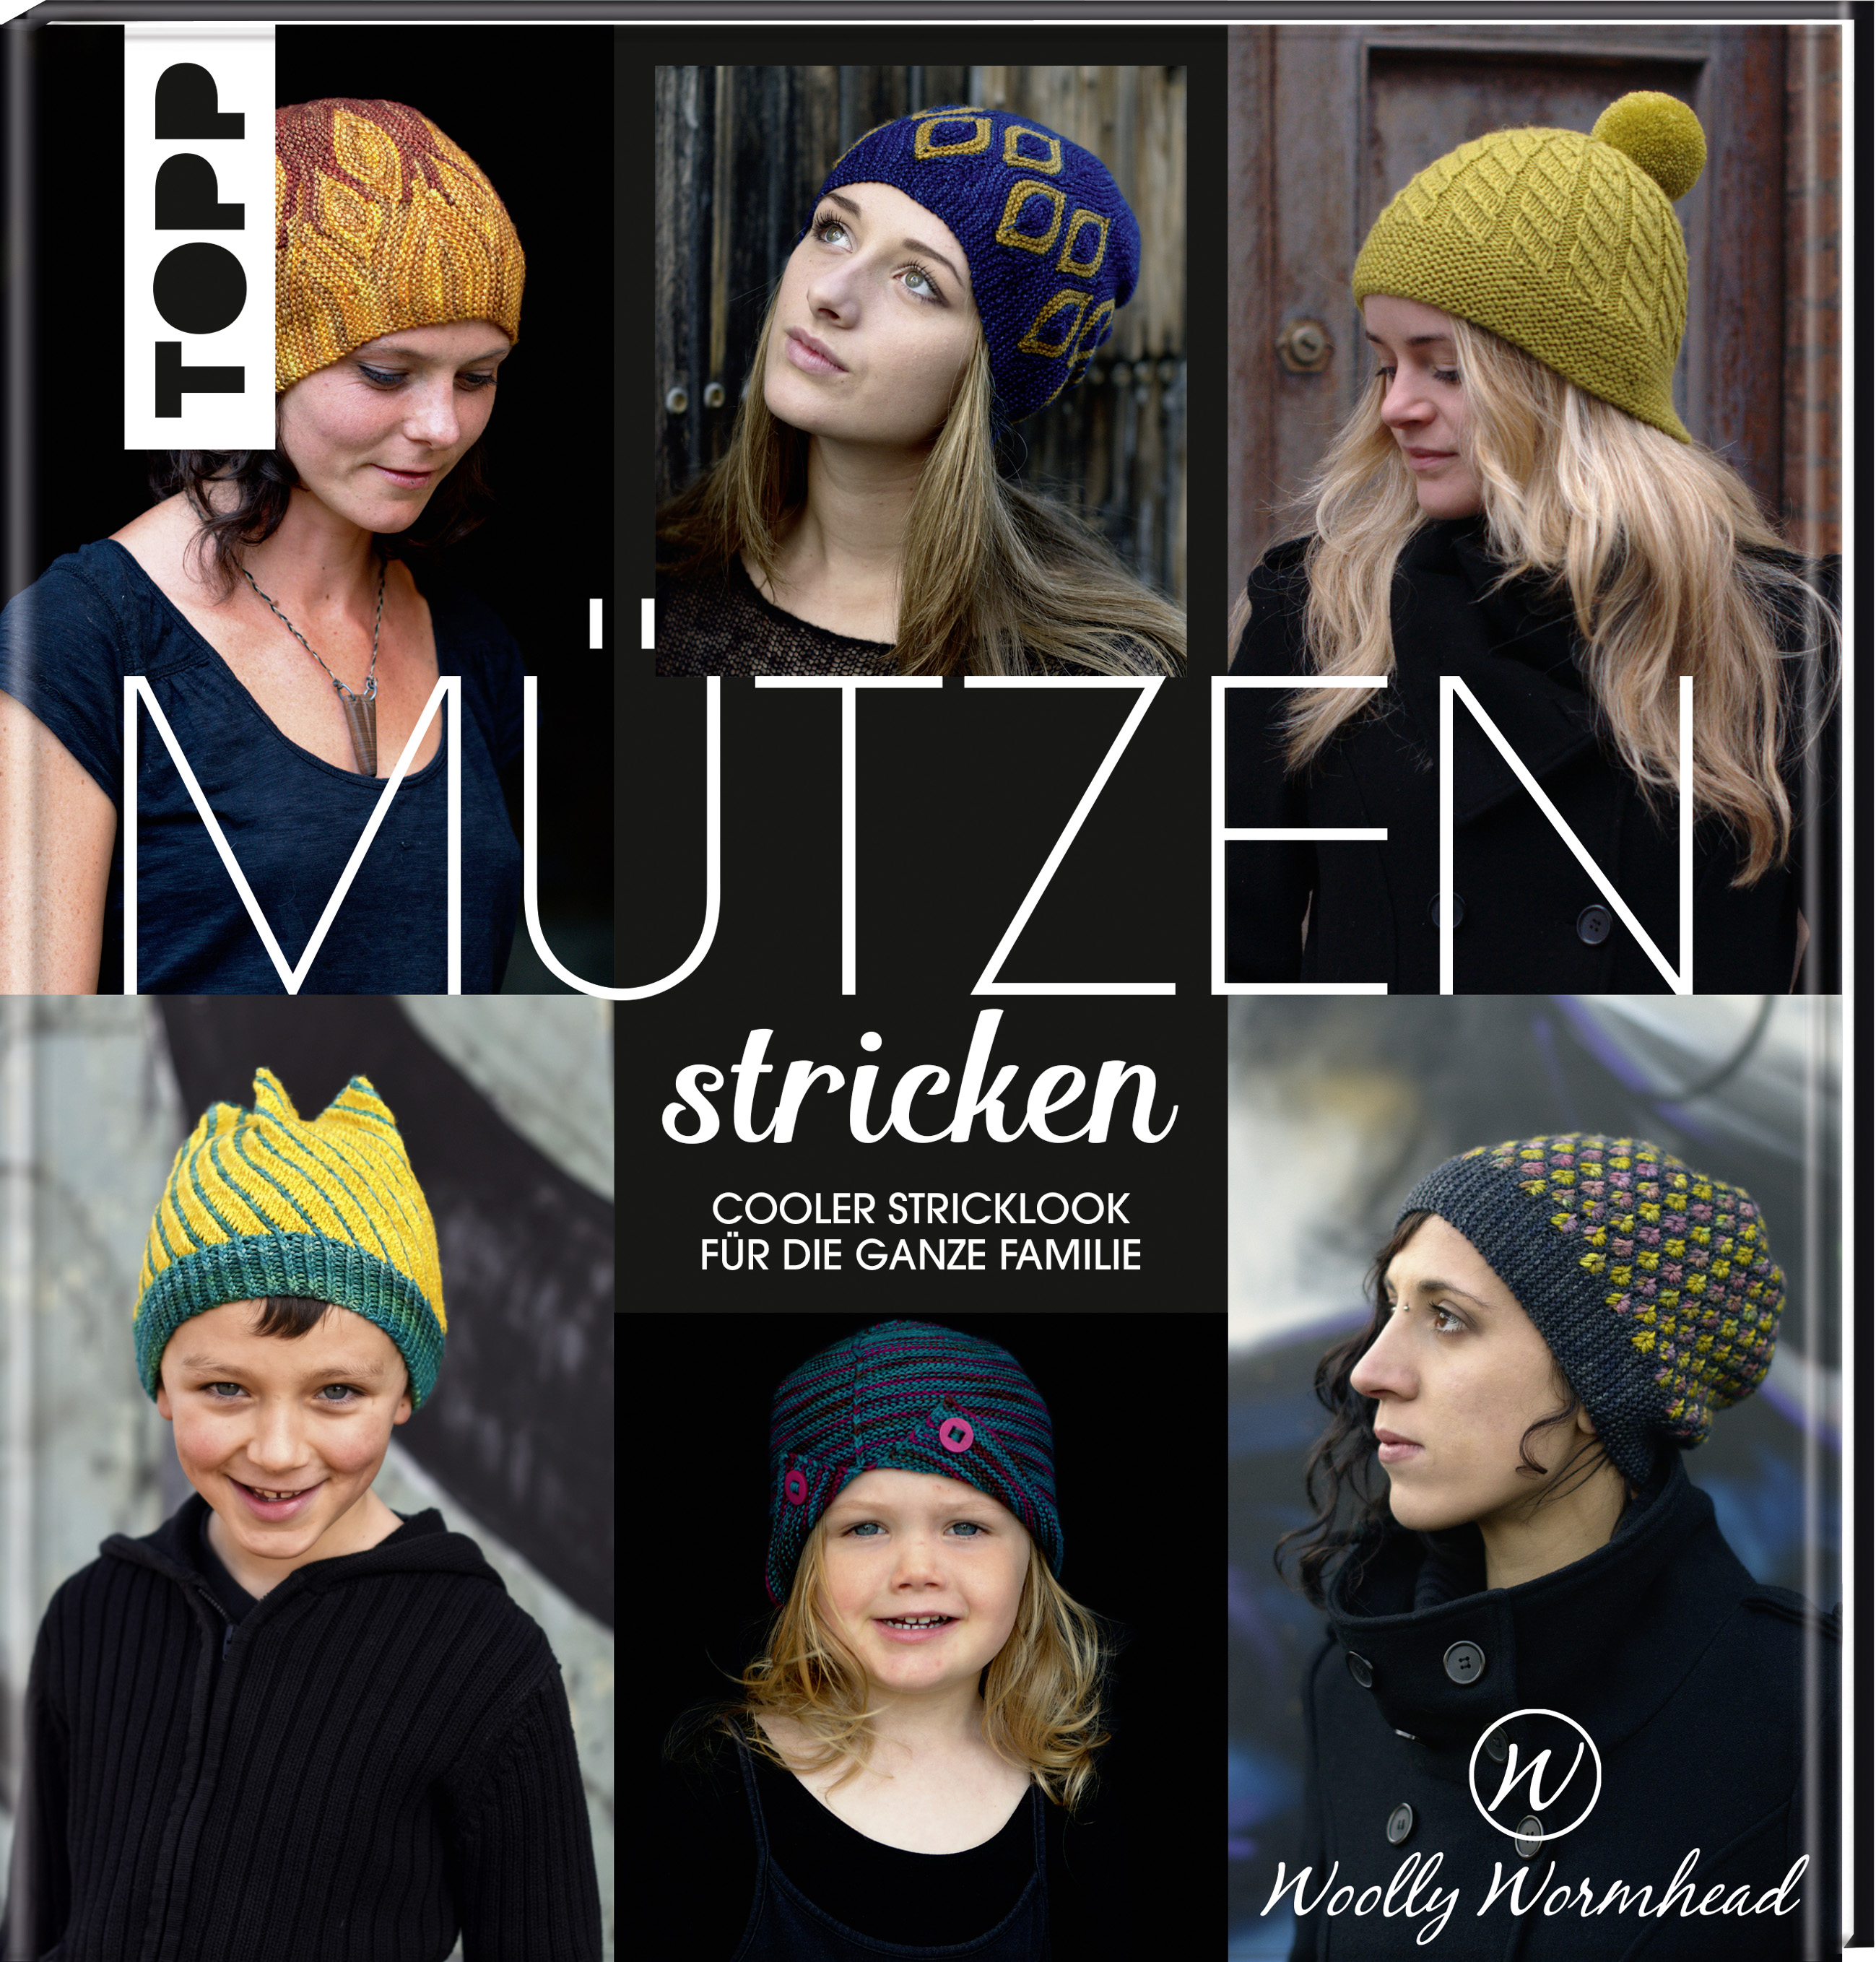 TOPP Mützen stricken by Woolly Wormhead